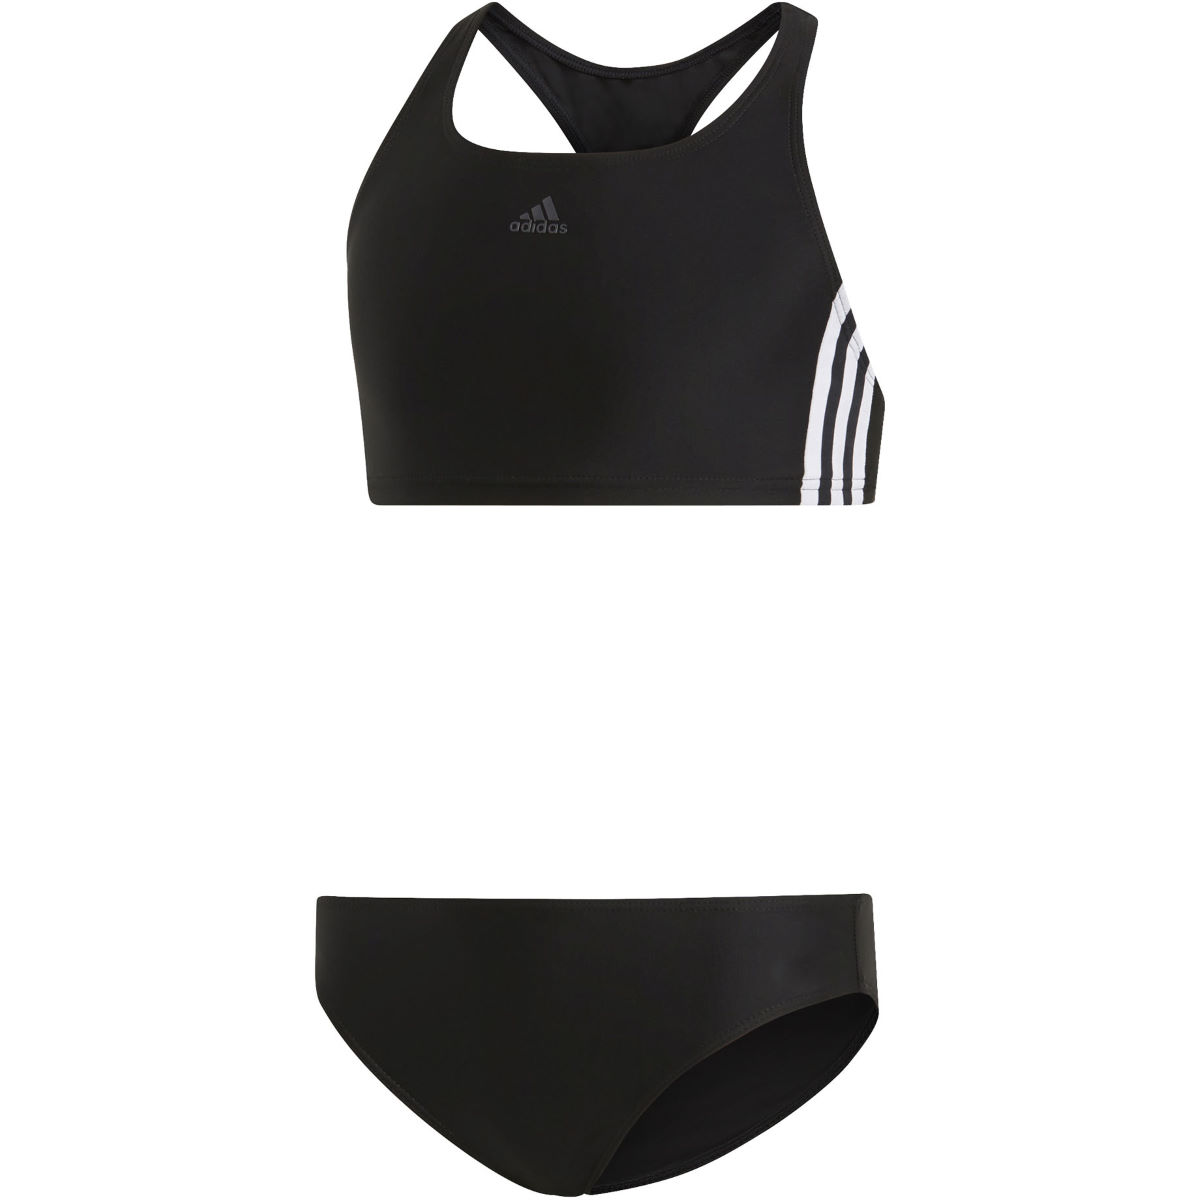 Image of adidas Fitness 3 Stripes Bikini Girls Two Piece Swimsuits